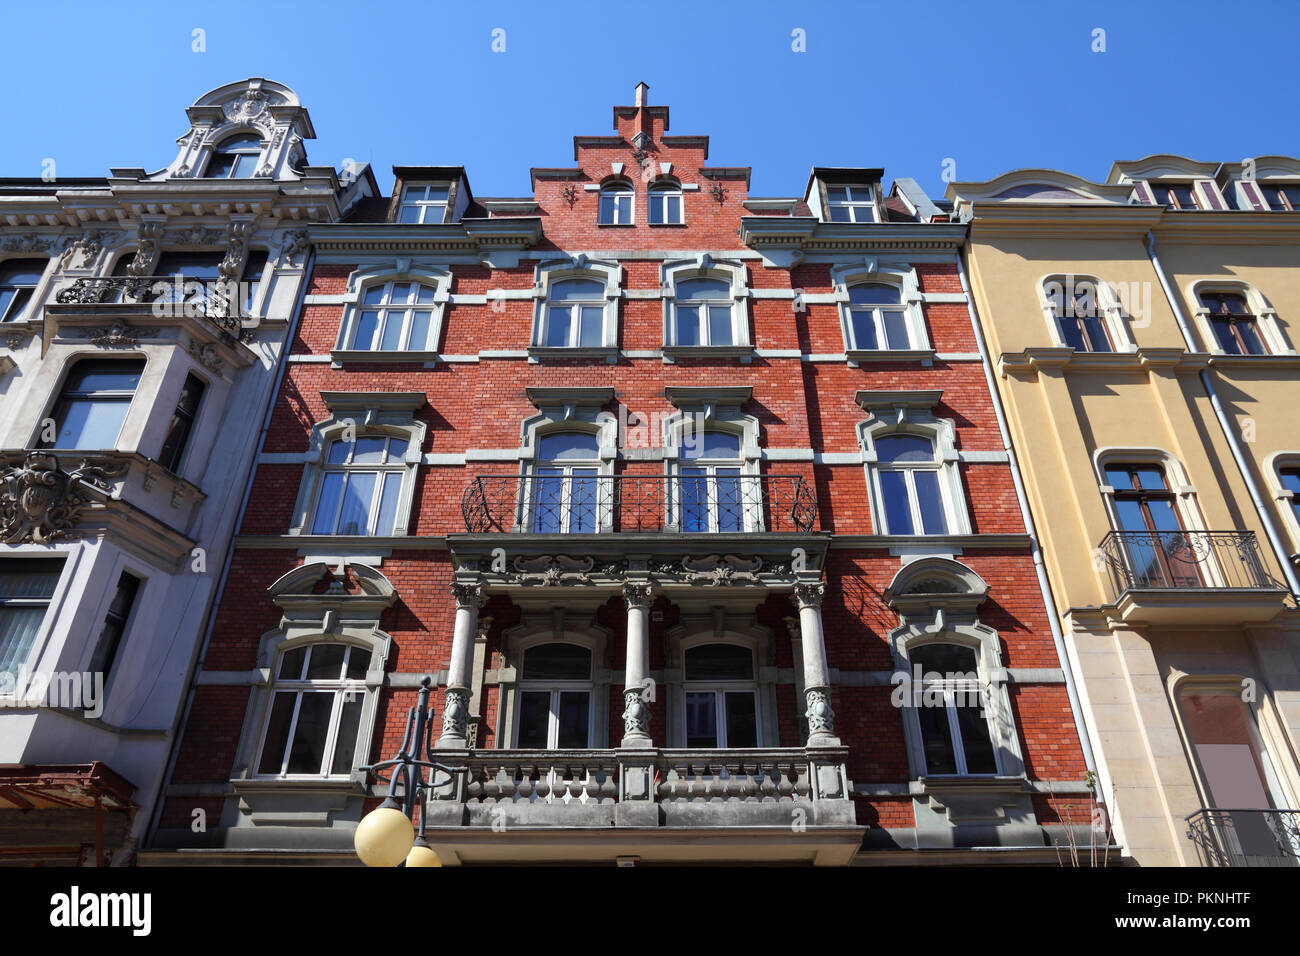 Katowice, Poland - vintage apartment building, old landmark - Stock Image